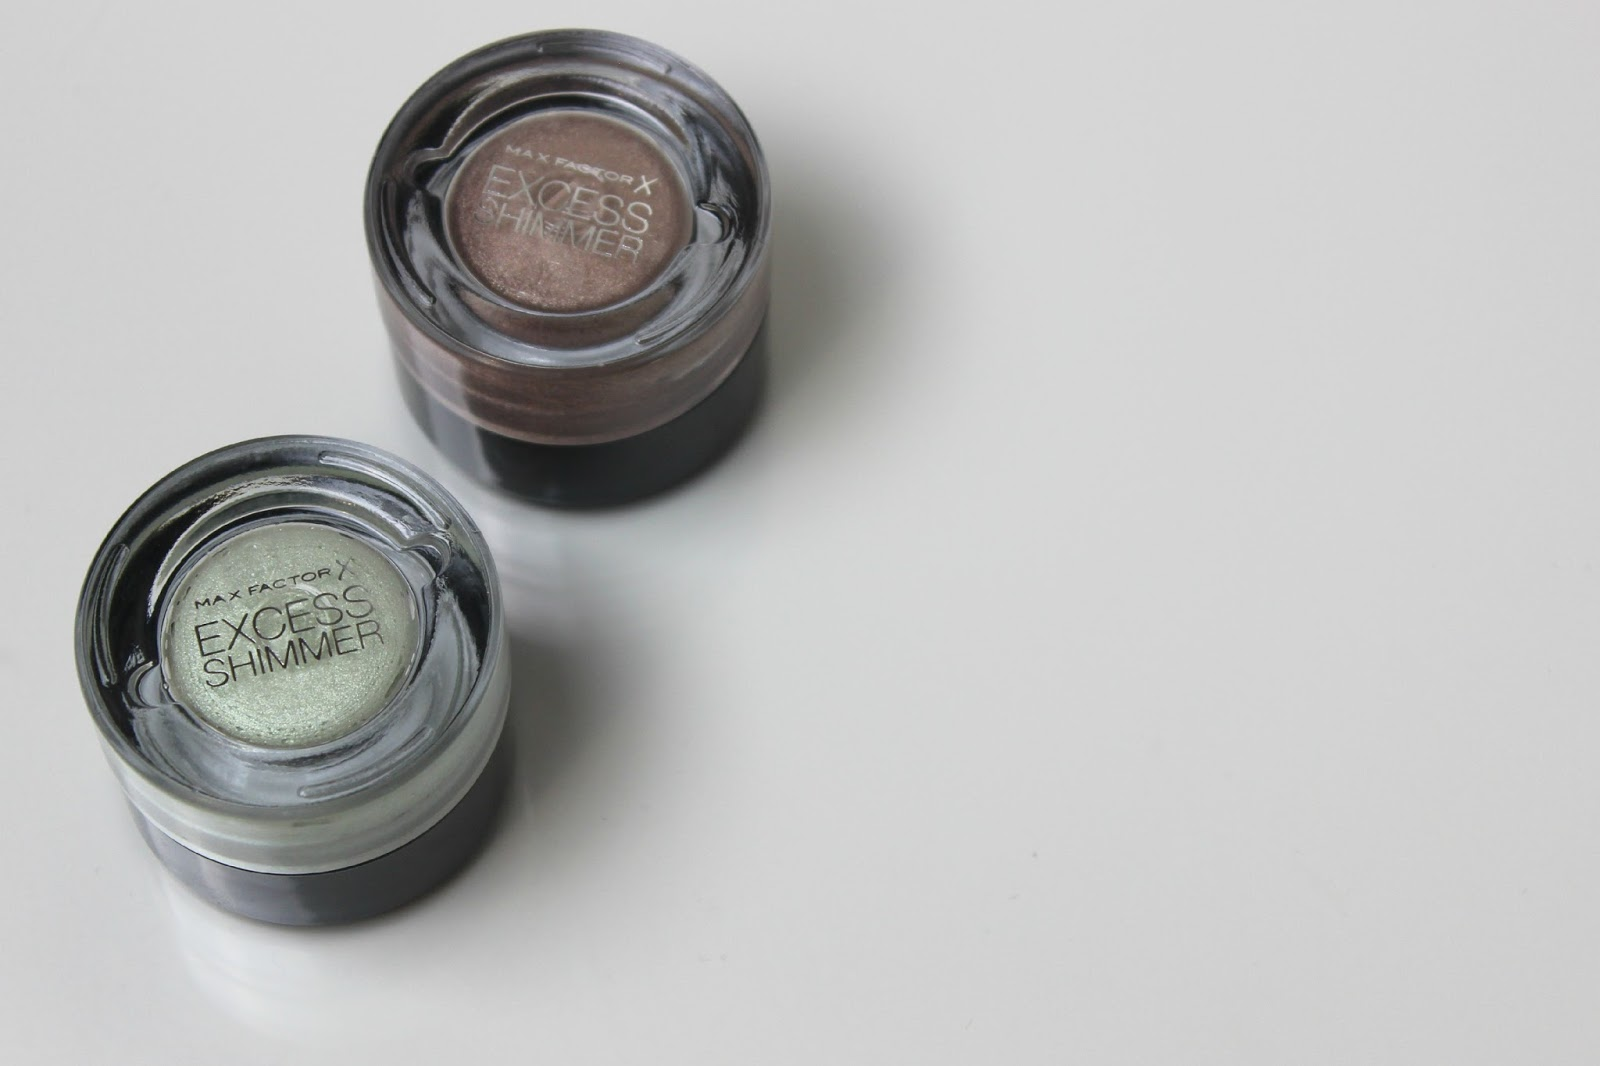 A picture of Max Factor Excess Shimmer Eyeshadow